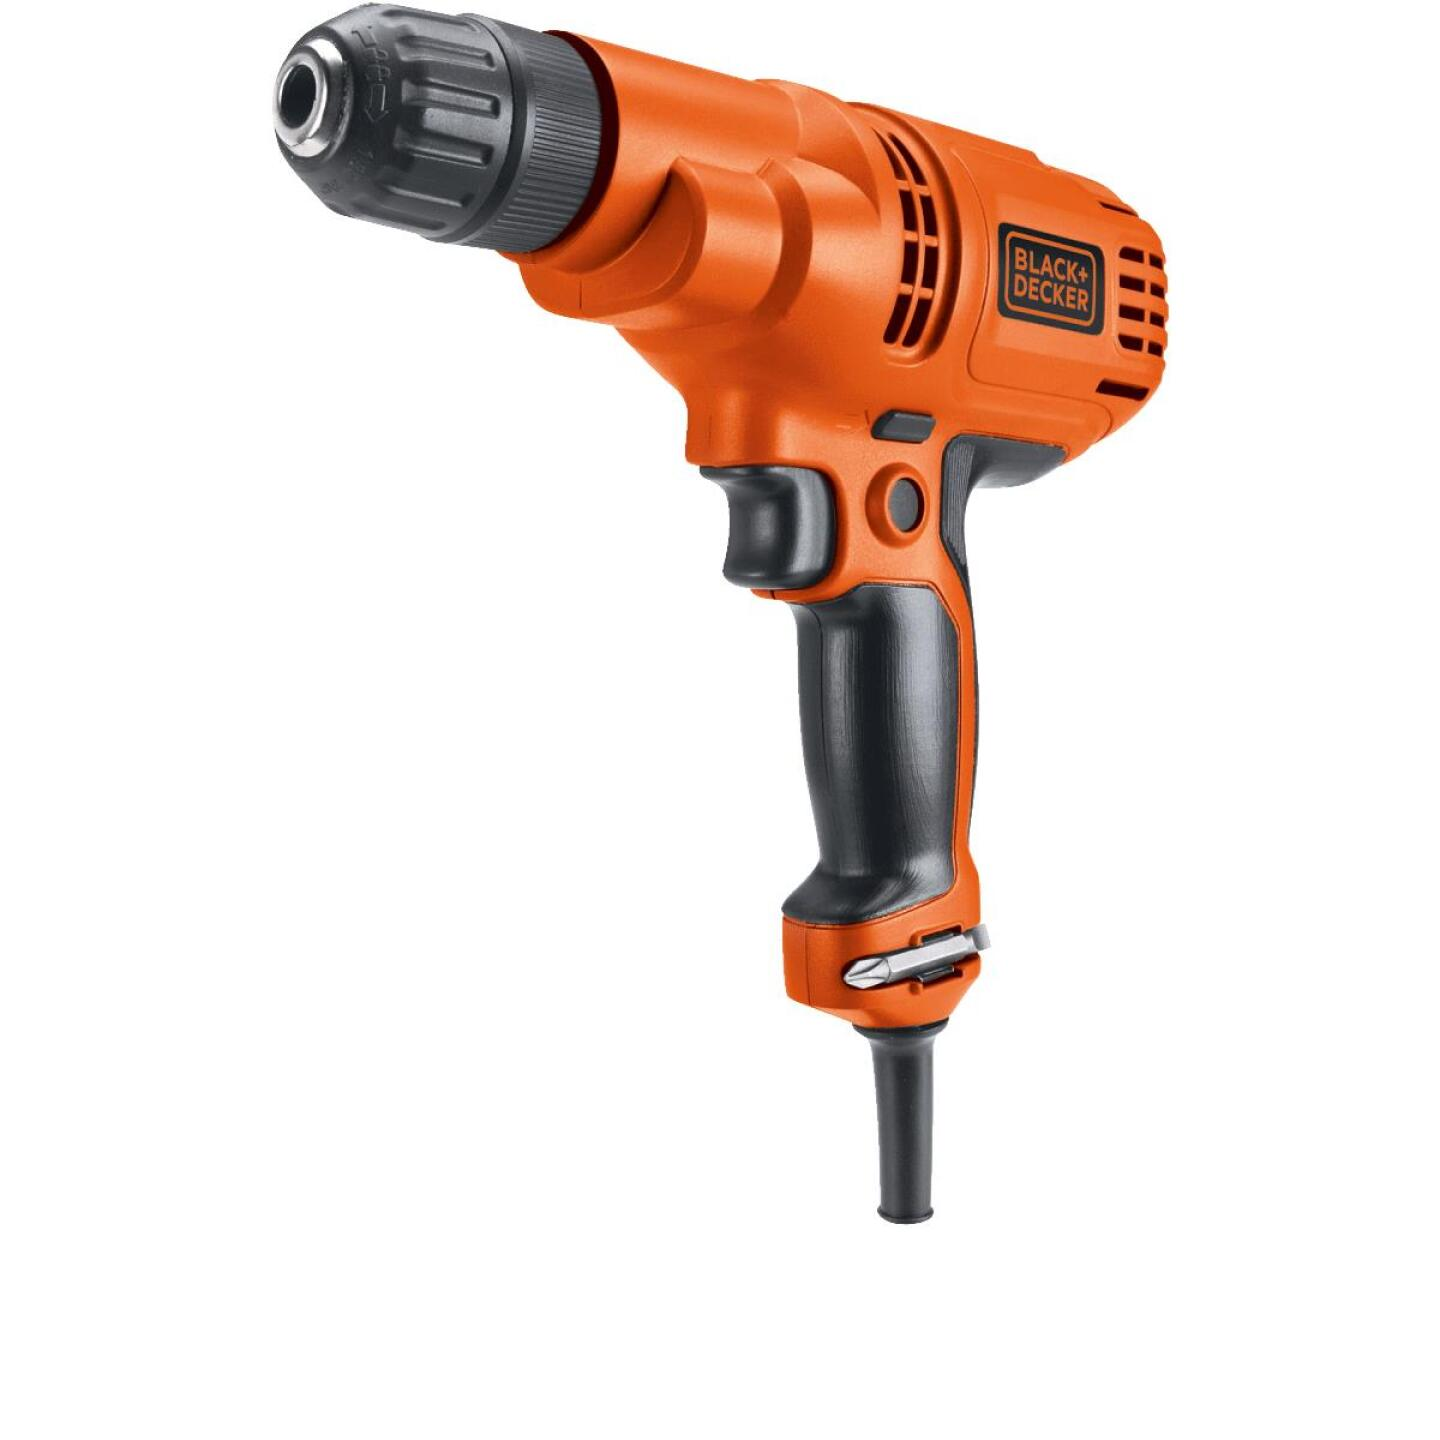 Black & Decker 3/8 In. 5.2-Amp Keyless Electric Drill/Driver Image 2